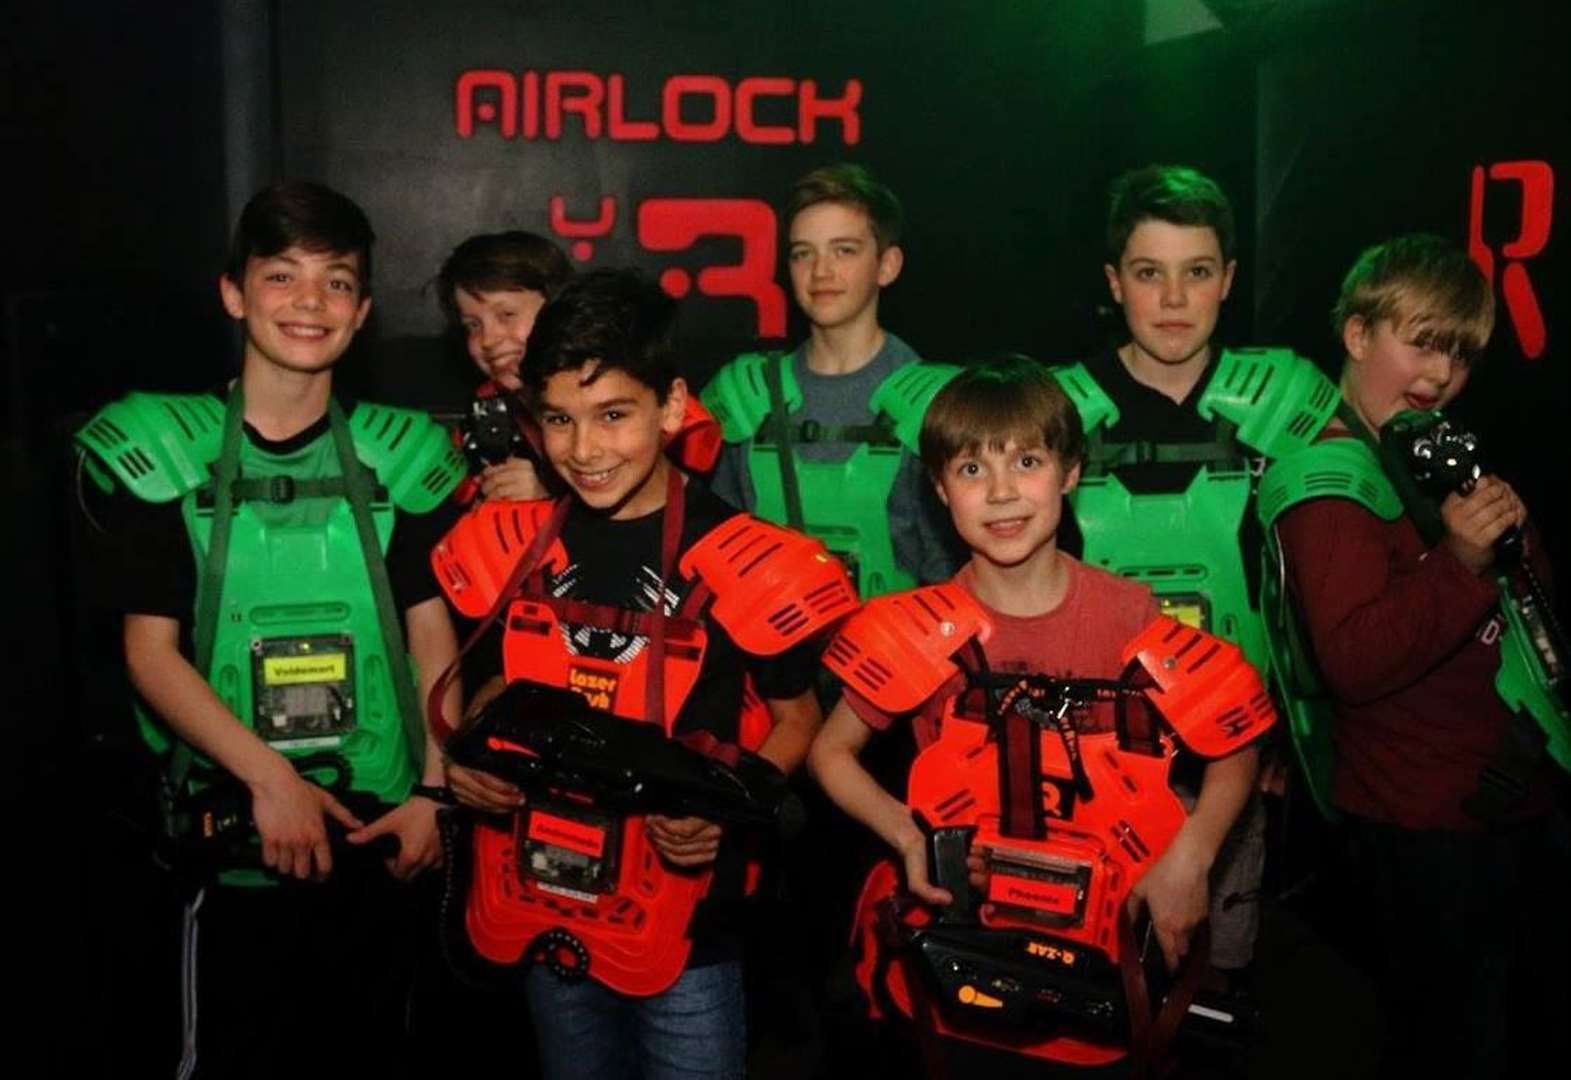 Summer offers for laser tag